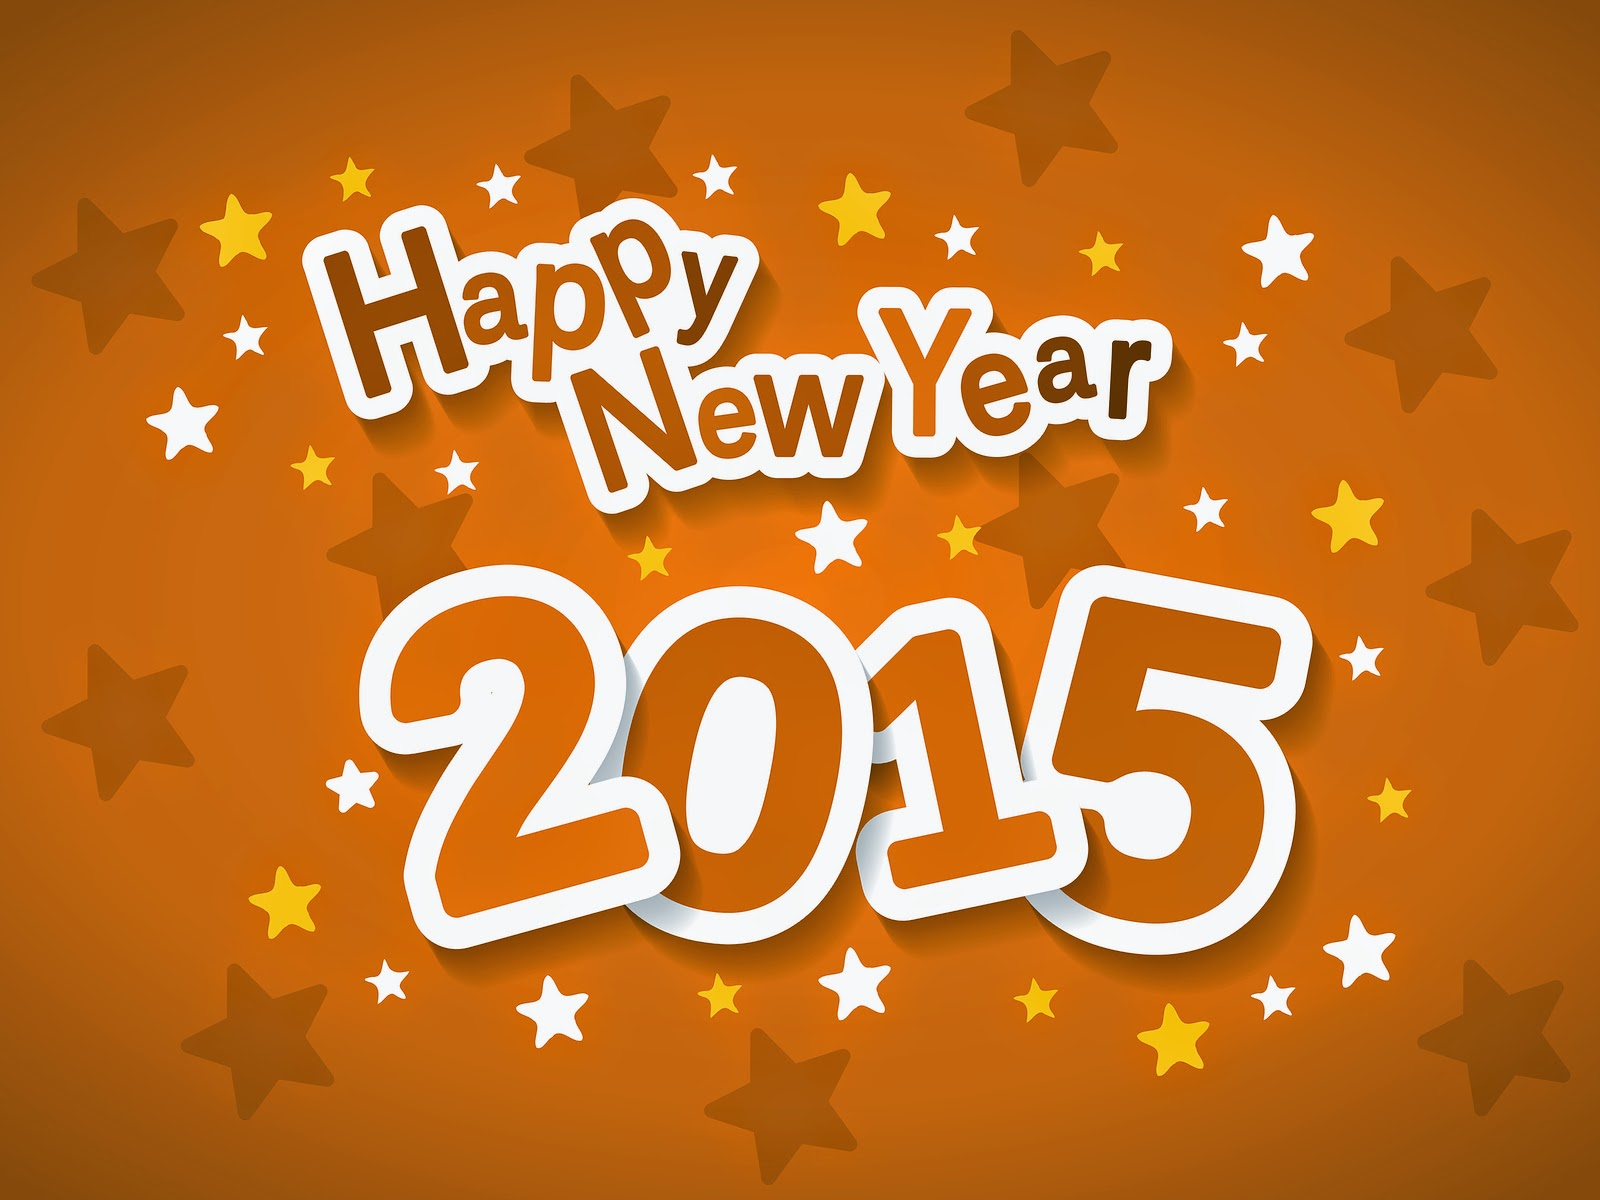 Happy New Year 2015 Greetings To All Happy New Year 2015